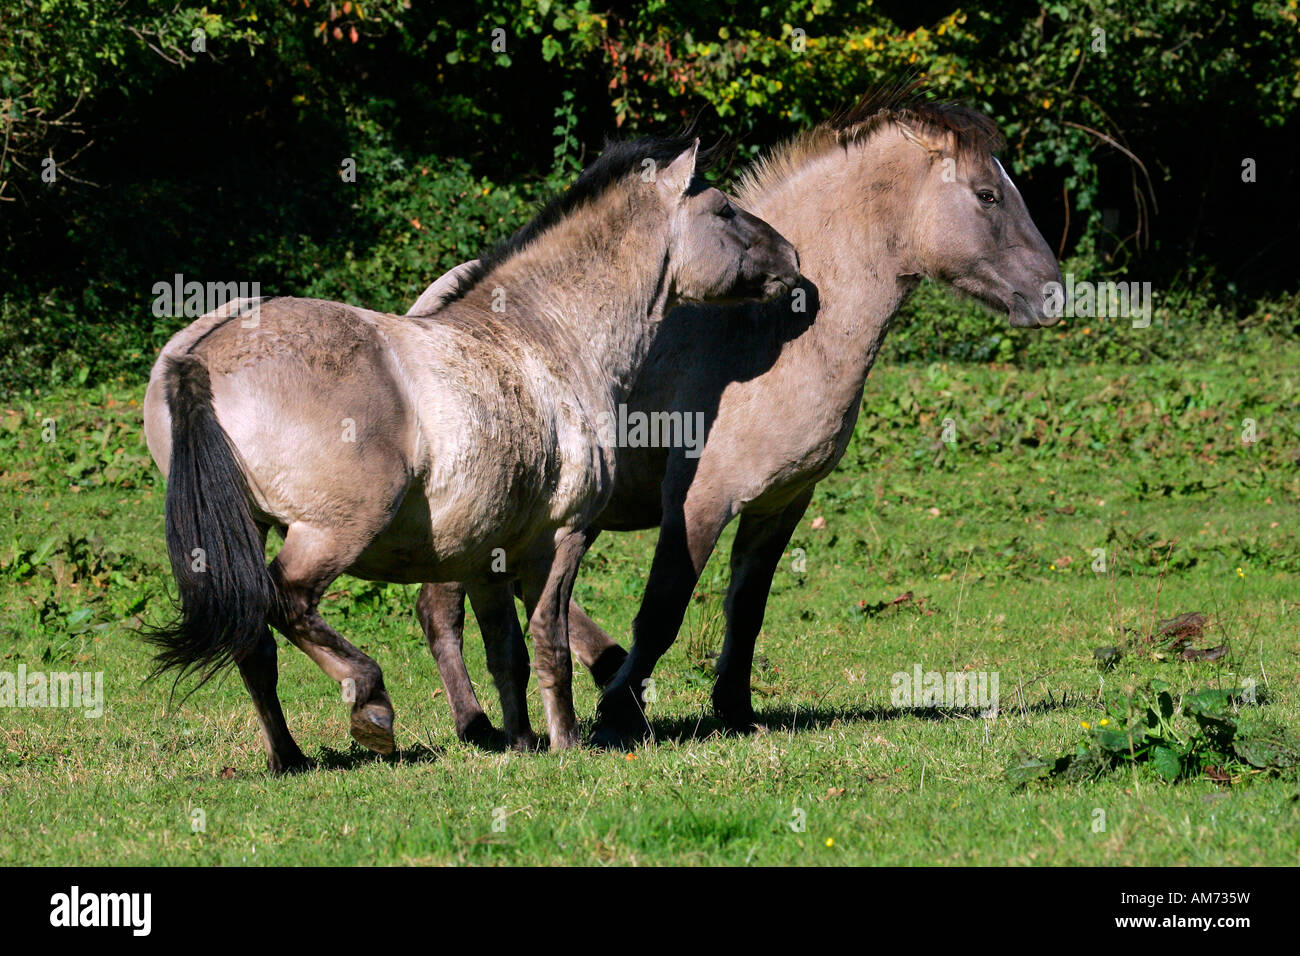 Konik horses - couple - social behaviour (Equus przewalskii f. caballus) Stock Photo